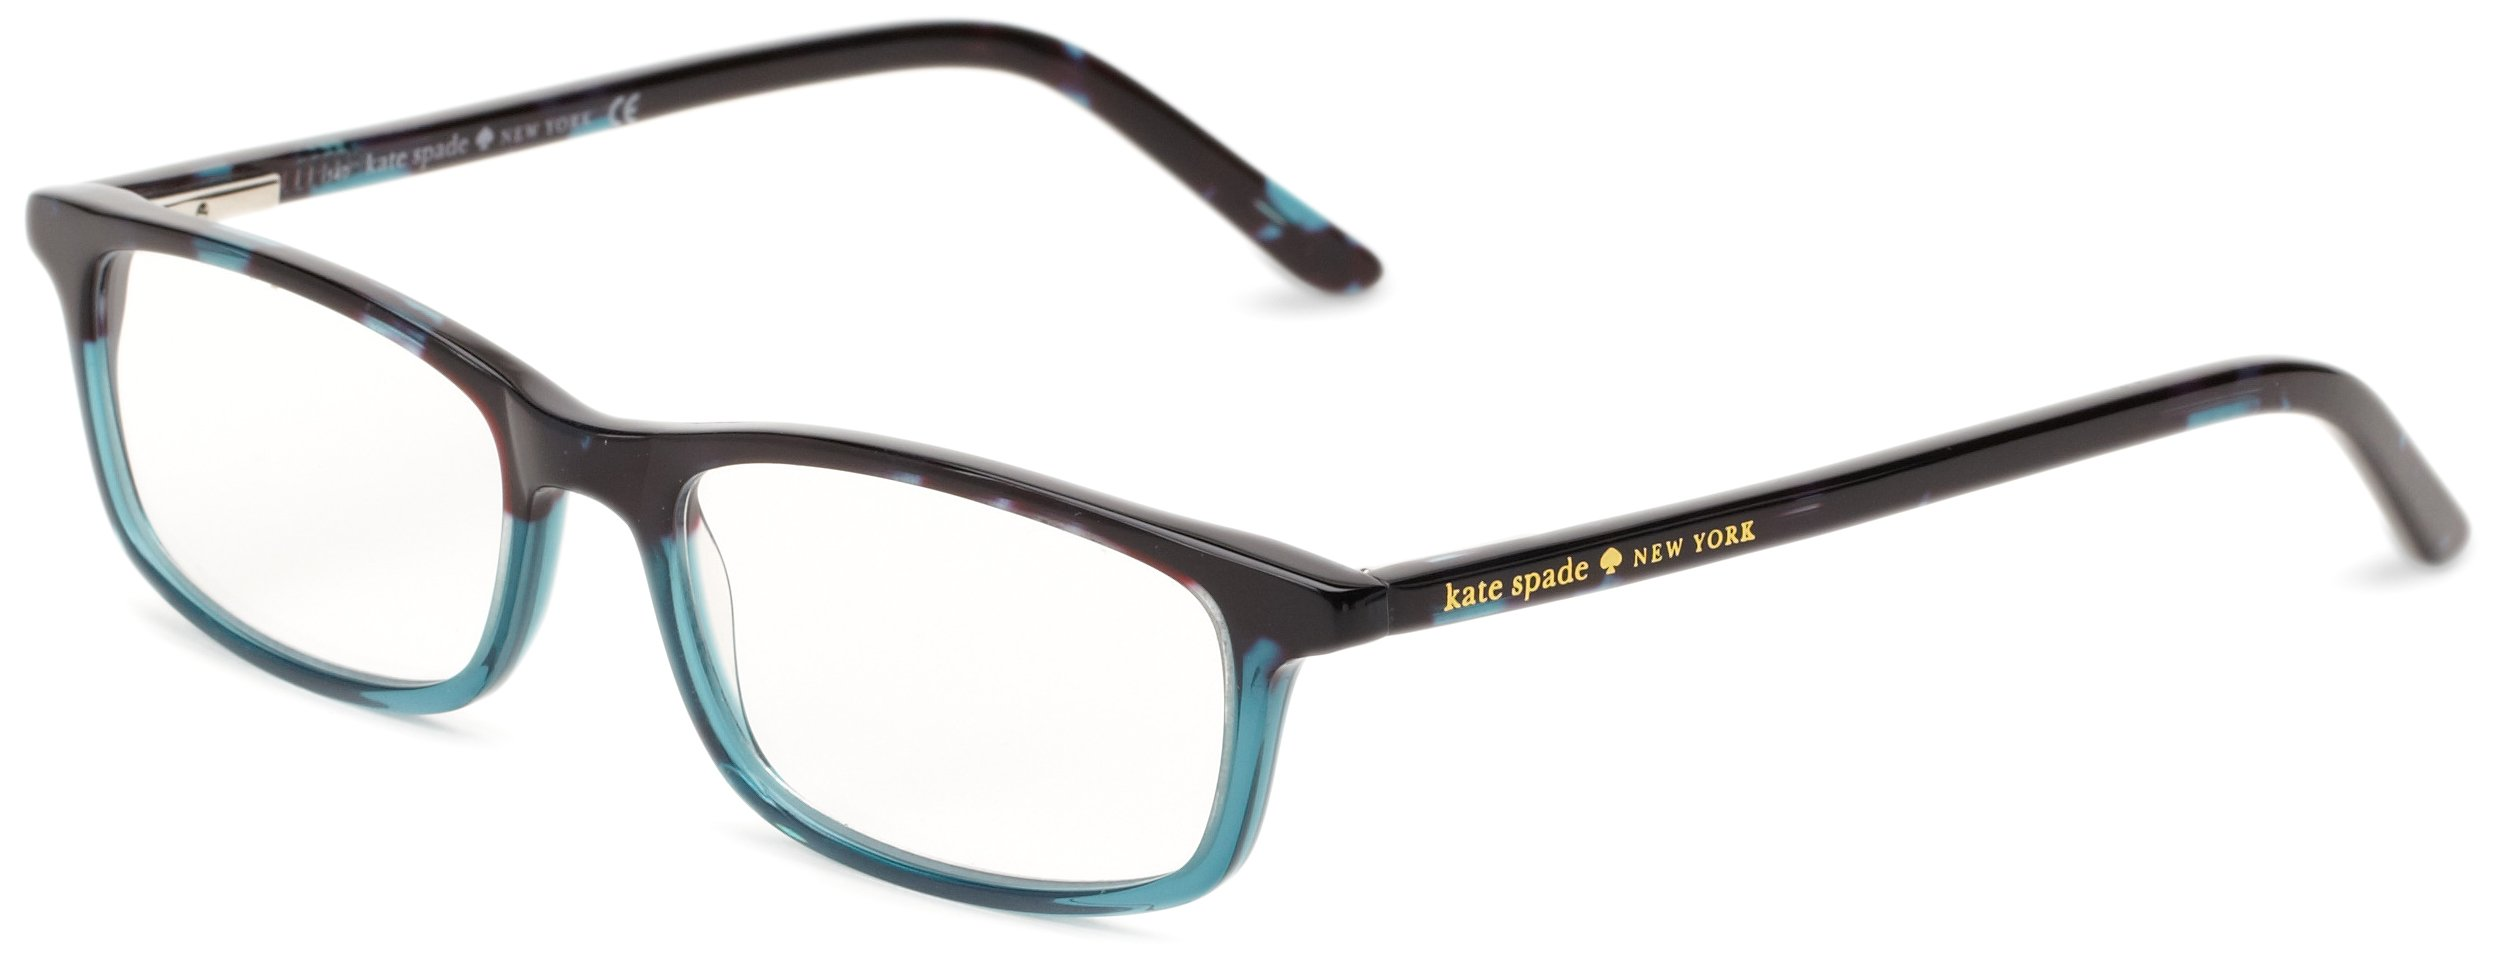 Kate Spade Women's Jodie Rectangular, Sky Blue Tortoise, 50 mm 1.5